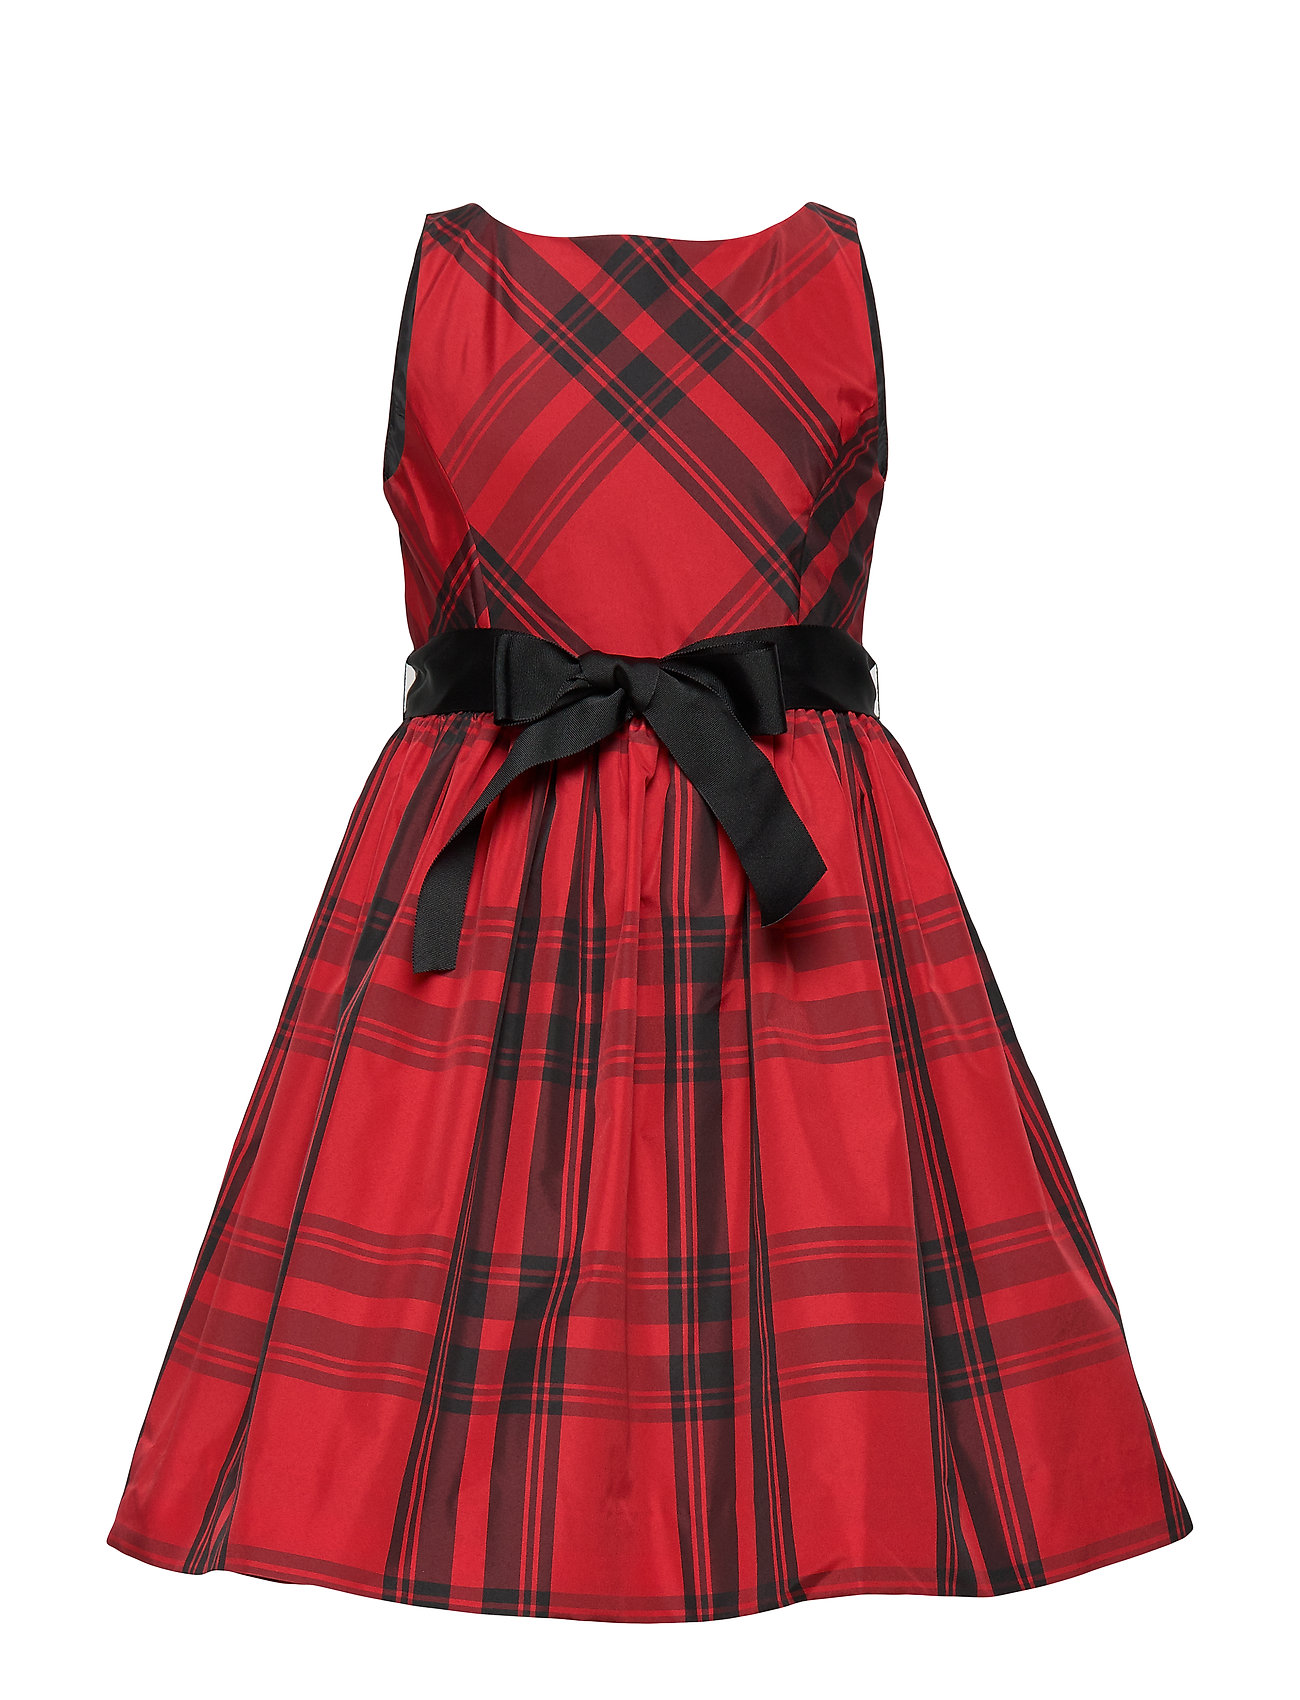 Ralph Lauren Kids PLAID TAFFET-DRESSES-WOVEN - RED AND BLACK